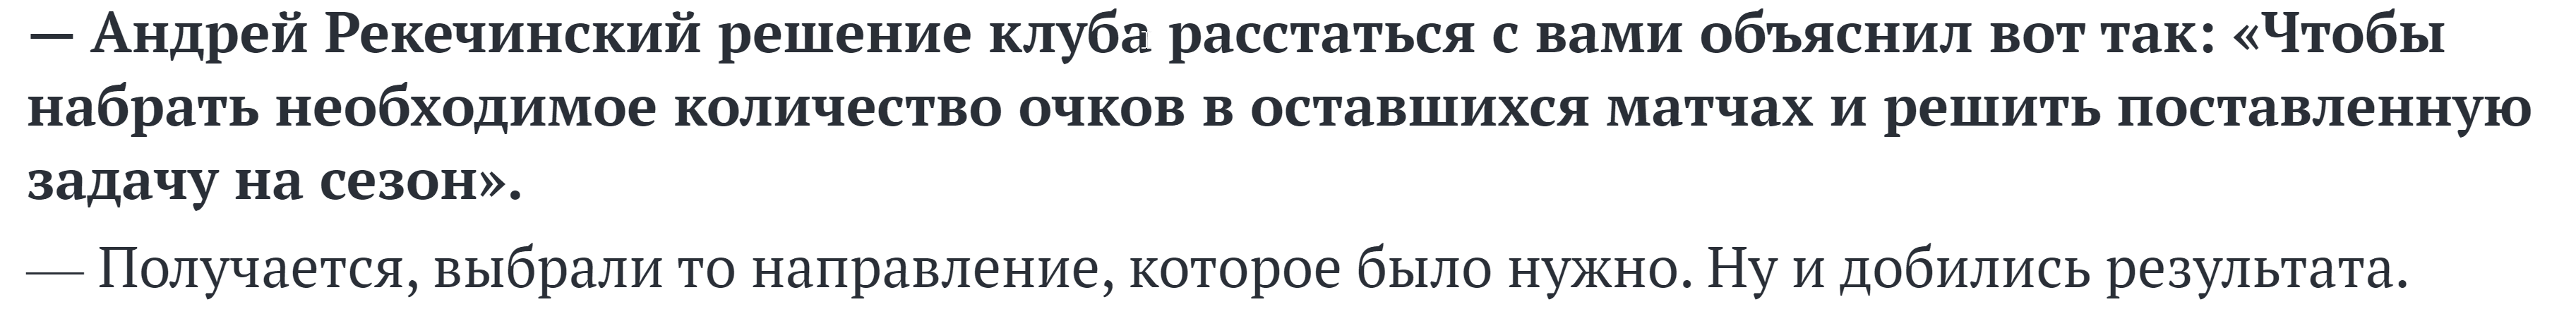 2021-05-19 16_50_57-Р.png